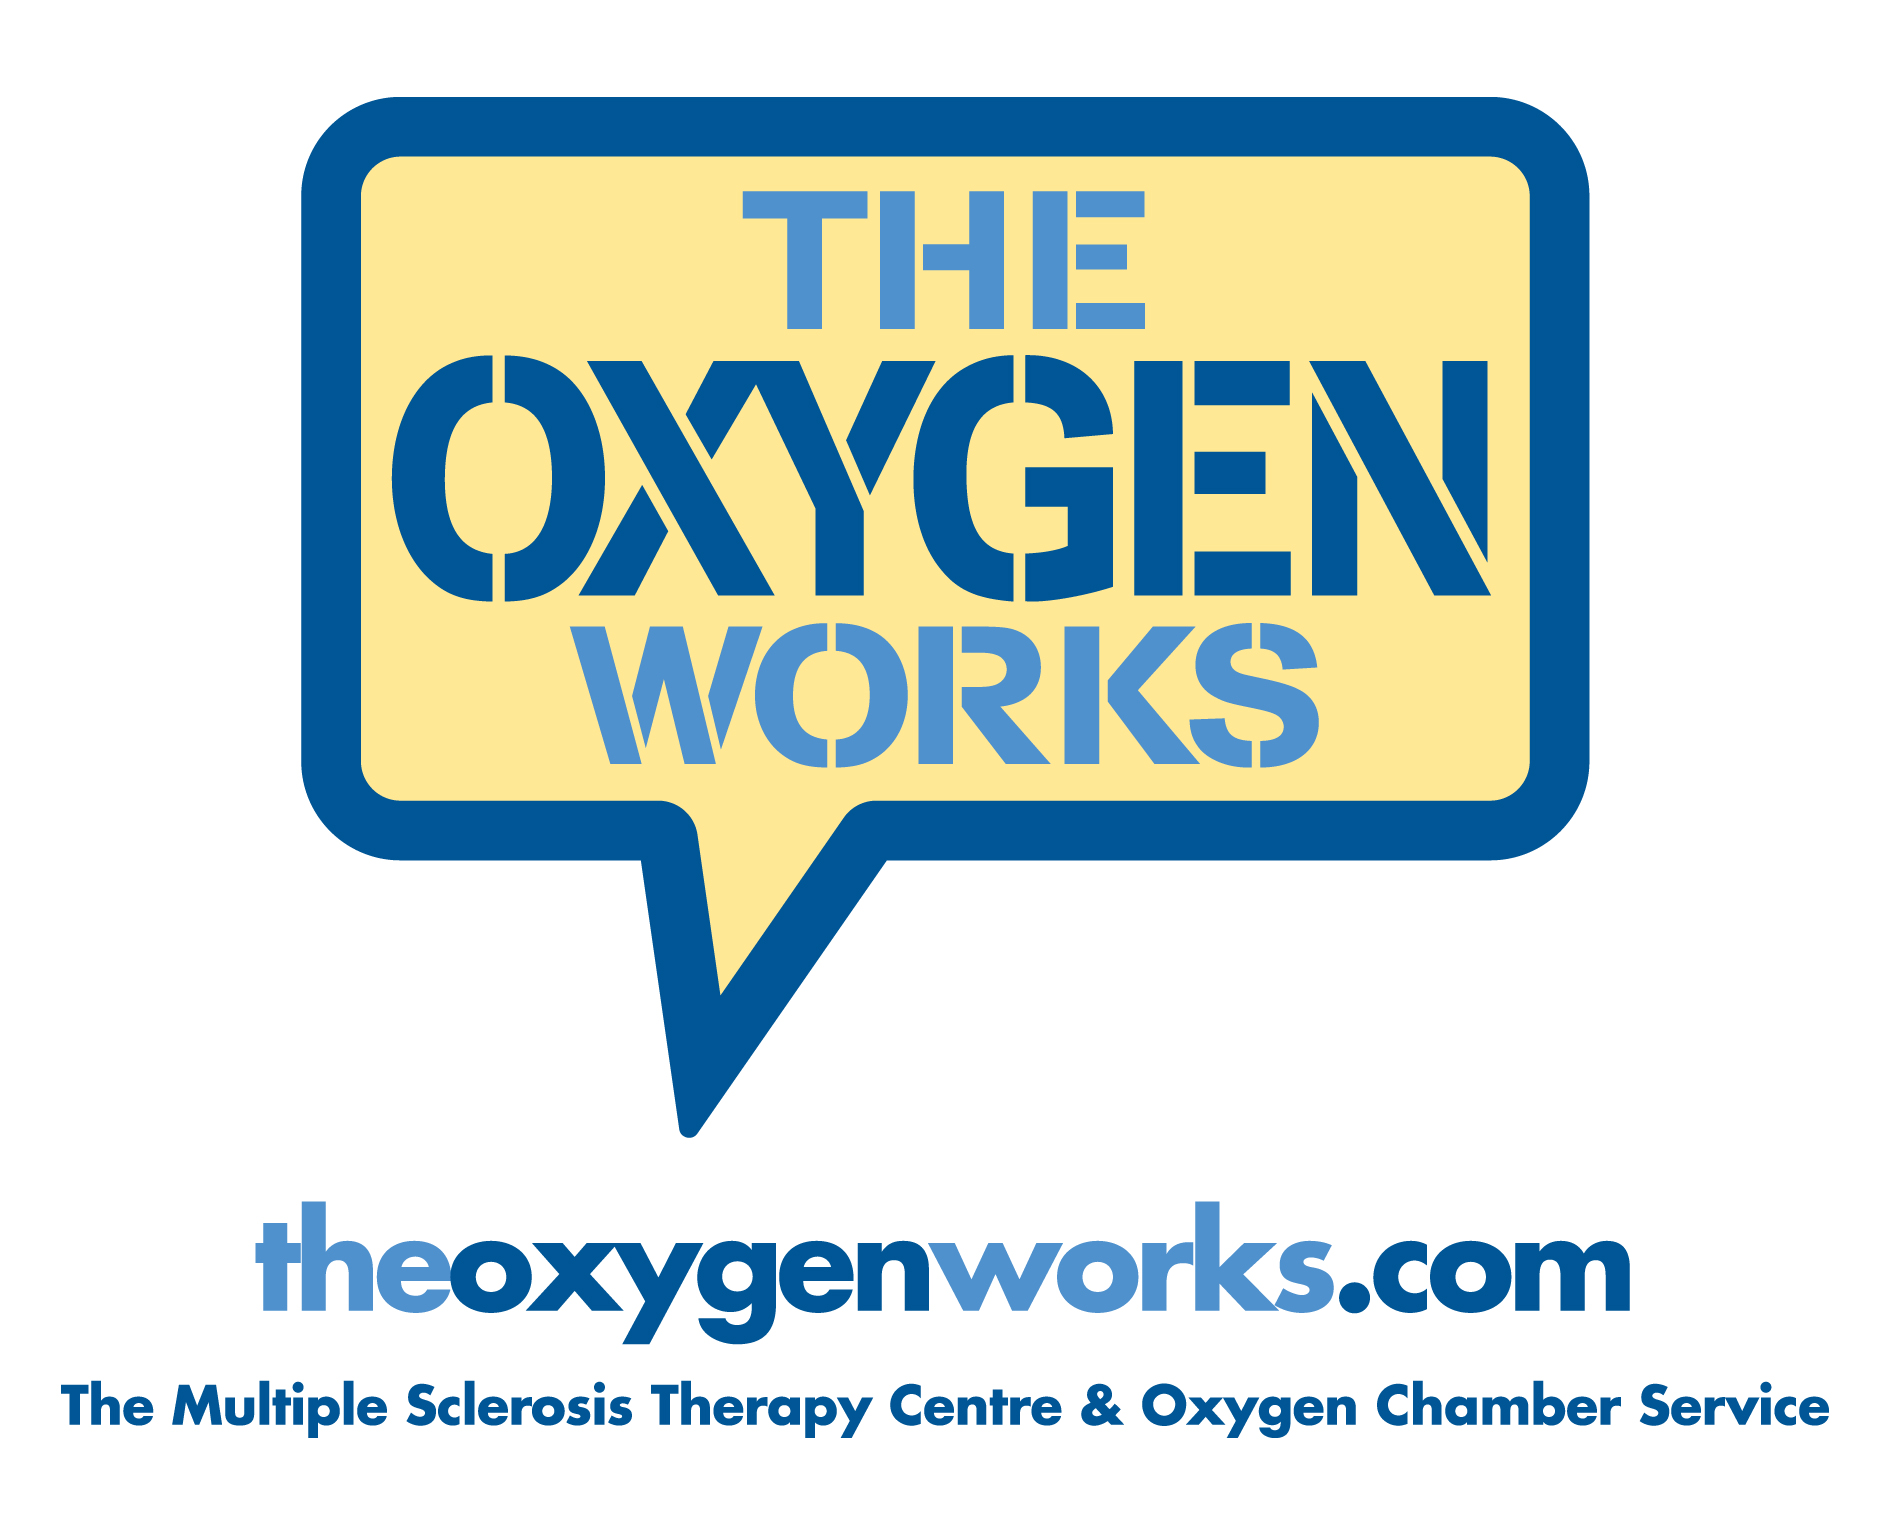 THE OXYGEN WORKS MASTER LOGO WITH STRAP LINE.jpg